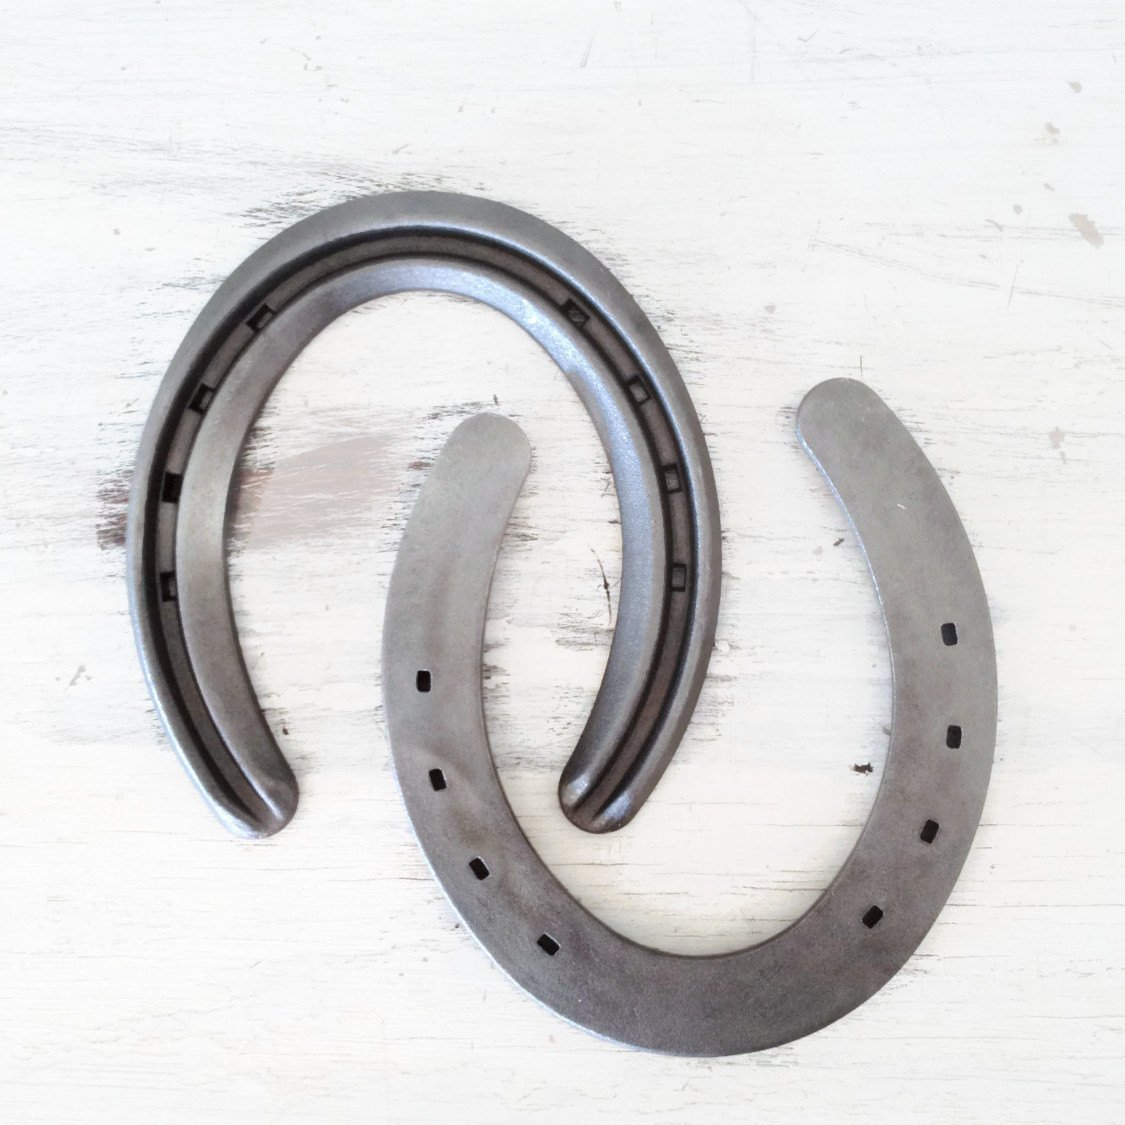 New Steel Horseshoes - Lite Rim Size 1 -Sand Blasted- Heritage Forge - 2 Shoes by The Heritage Forge (Image #2)